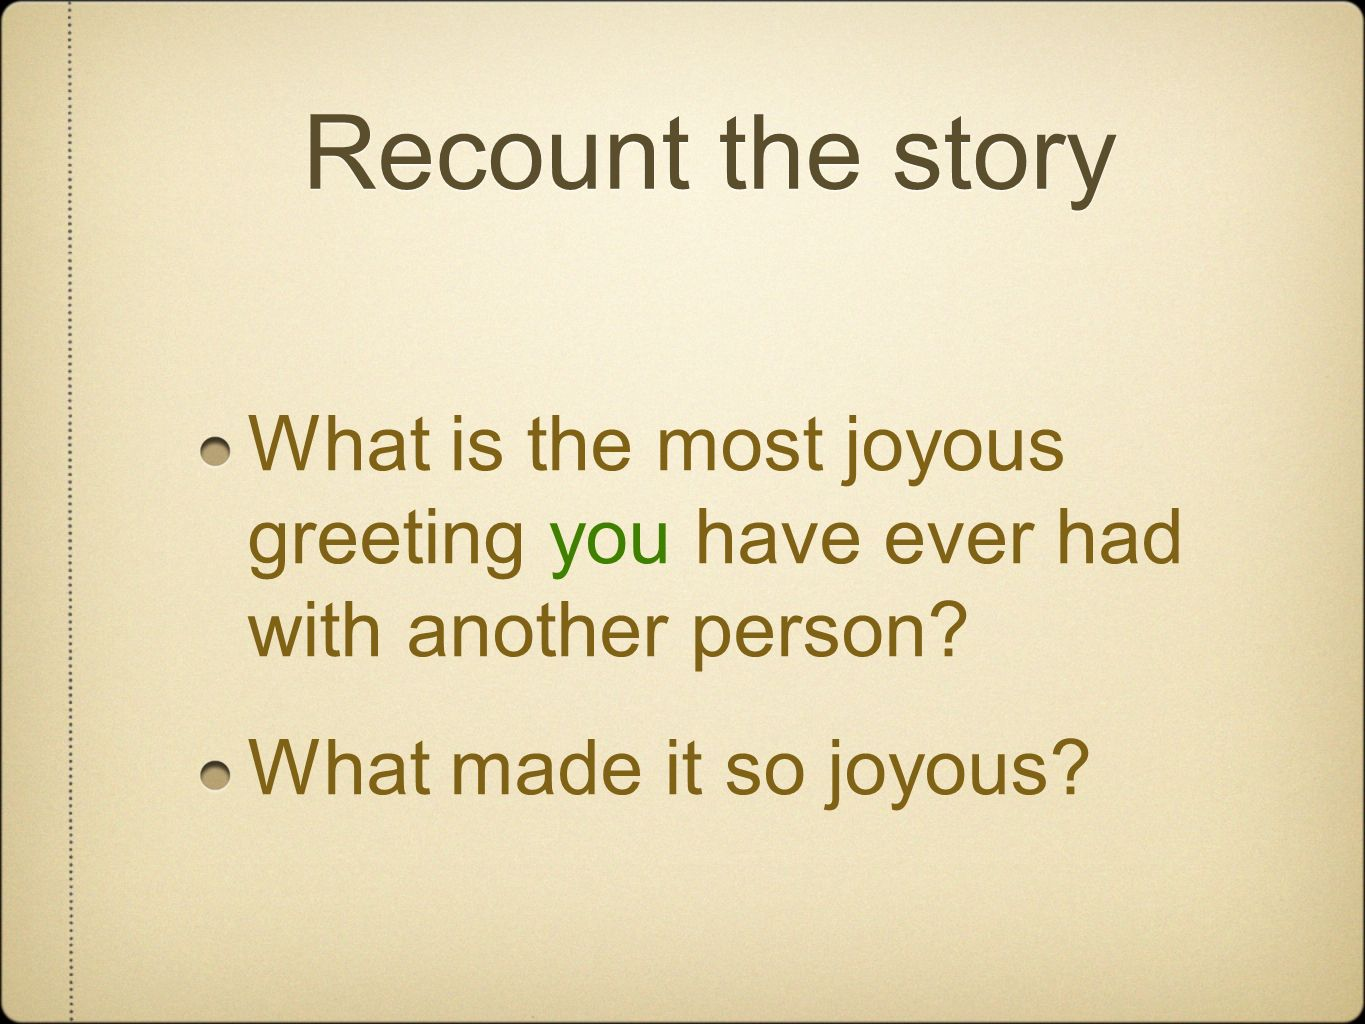 Recount the story What is the most joyous greeting you have ever had with another person.